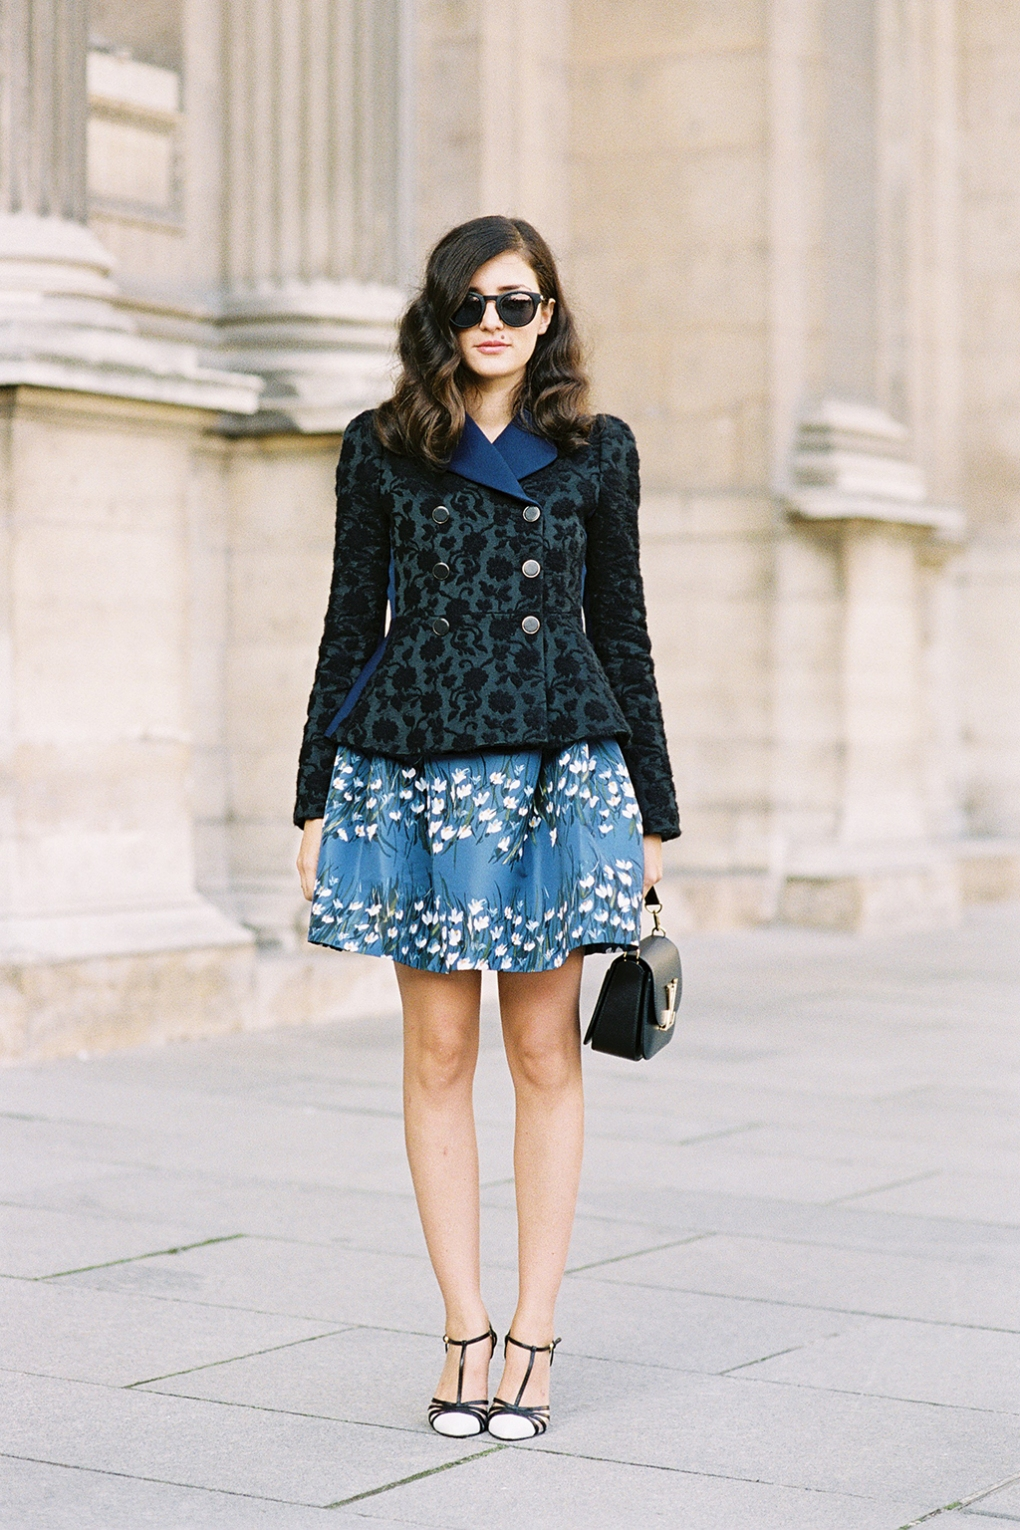 5.-brocade-coat-with-blue-dress.jpg